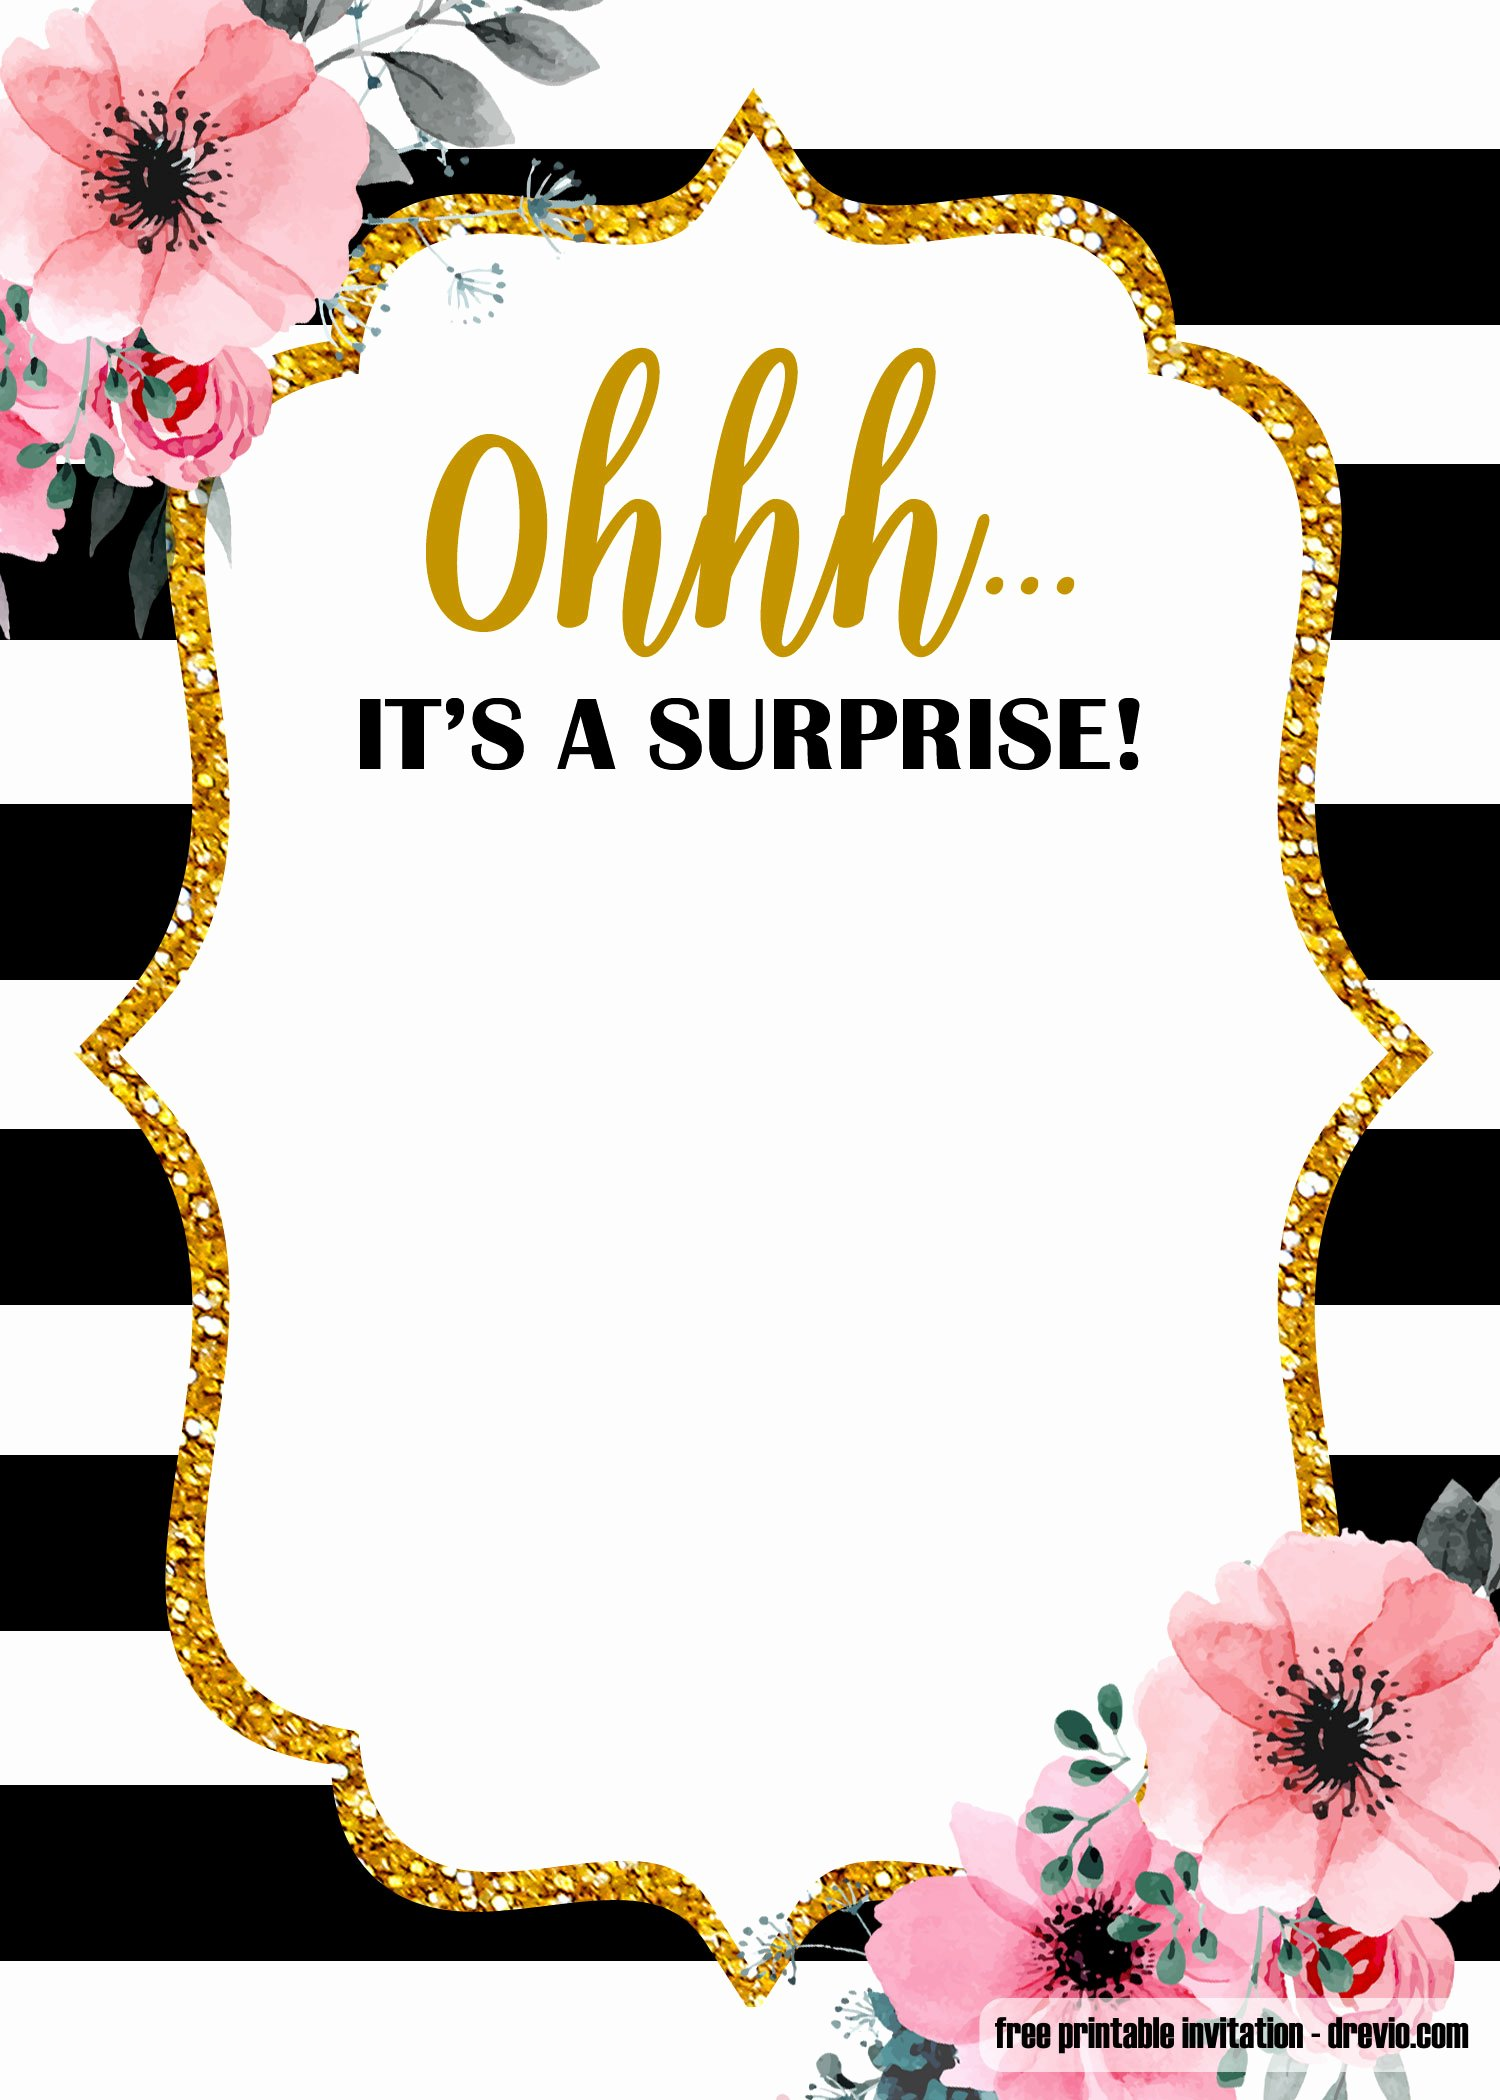 Surprise Party Invitations Templates Free Awesome Free Printable Surprise Party Birthday Invitation